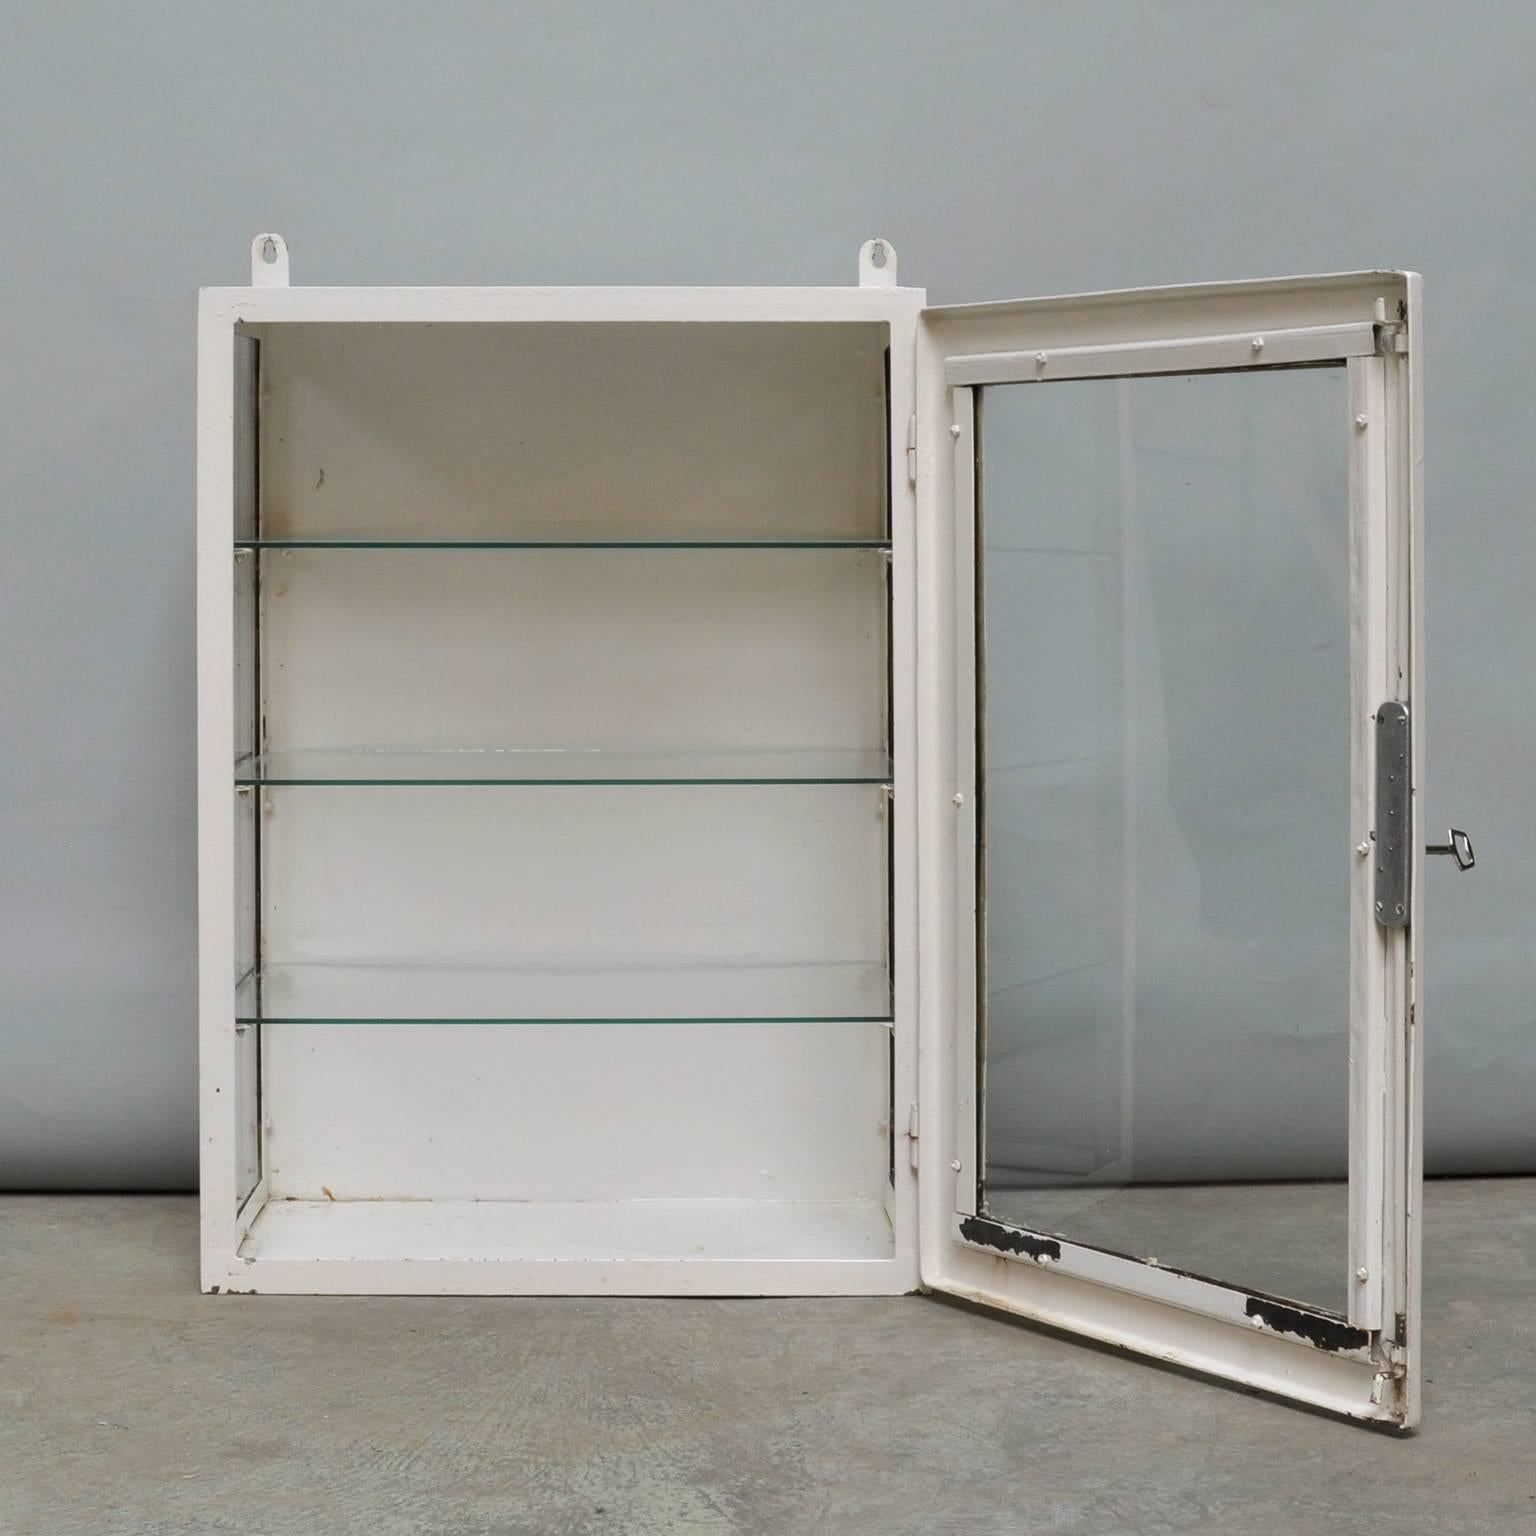 Merveilleux Mid 20th Century Small Hanging Iron And Antique Glass Medicine Cabinet,  1960s For Sale